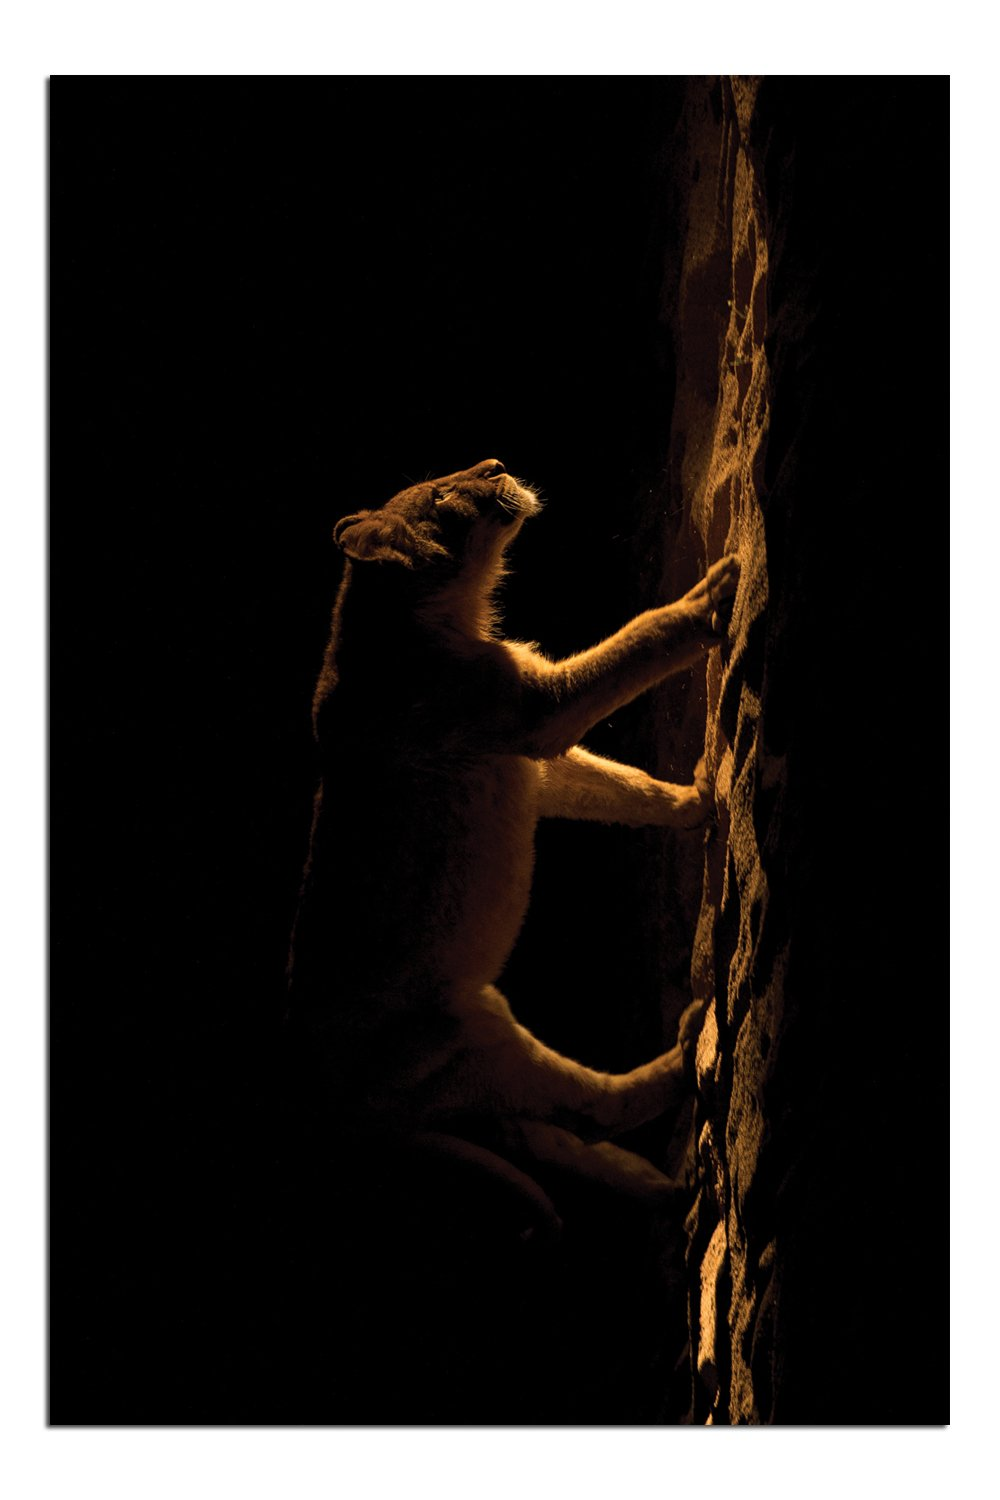 JP London Solvent Free Print PAPM1X221916 The Spot Lion Night Hunt Ready to Frame Poster Wall Art 36 h by 24 w